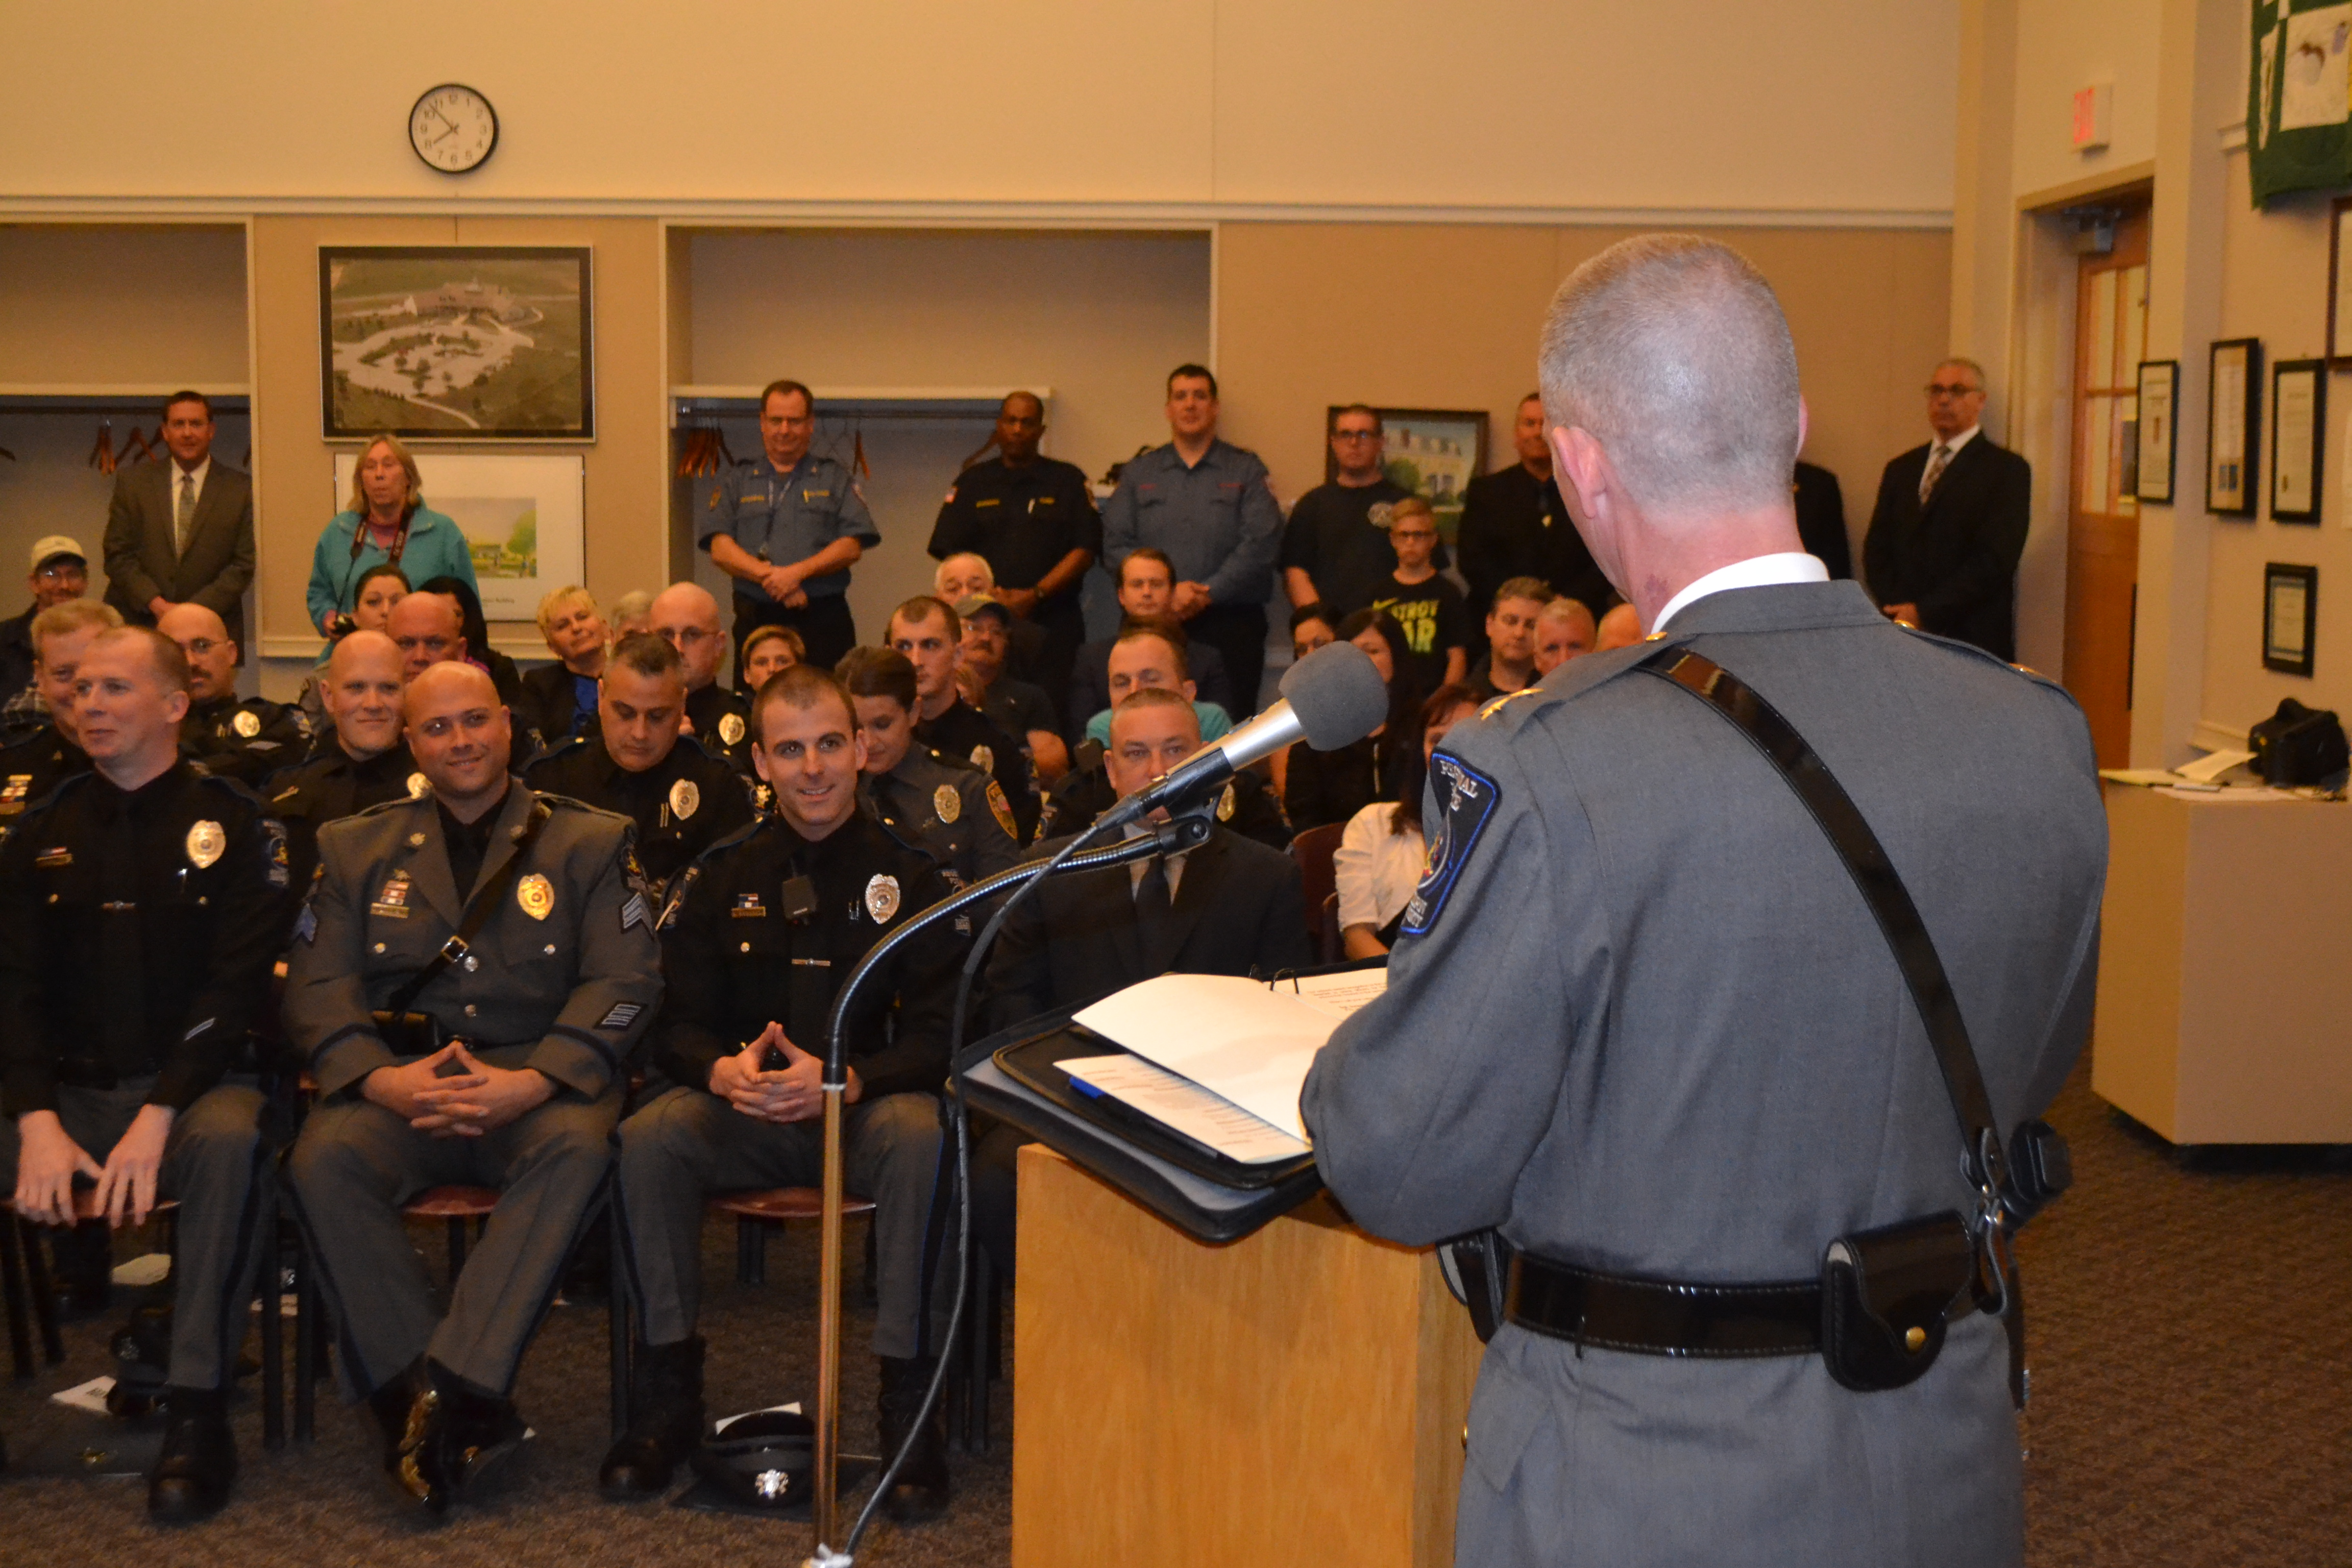 Police officers honored in New Garden ceremony | Chester County Press